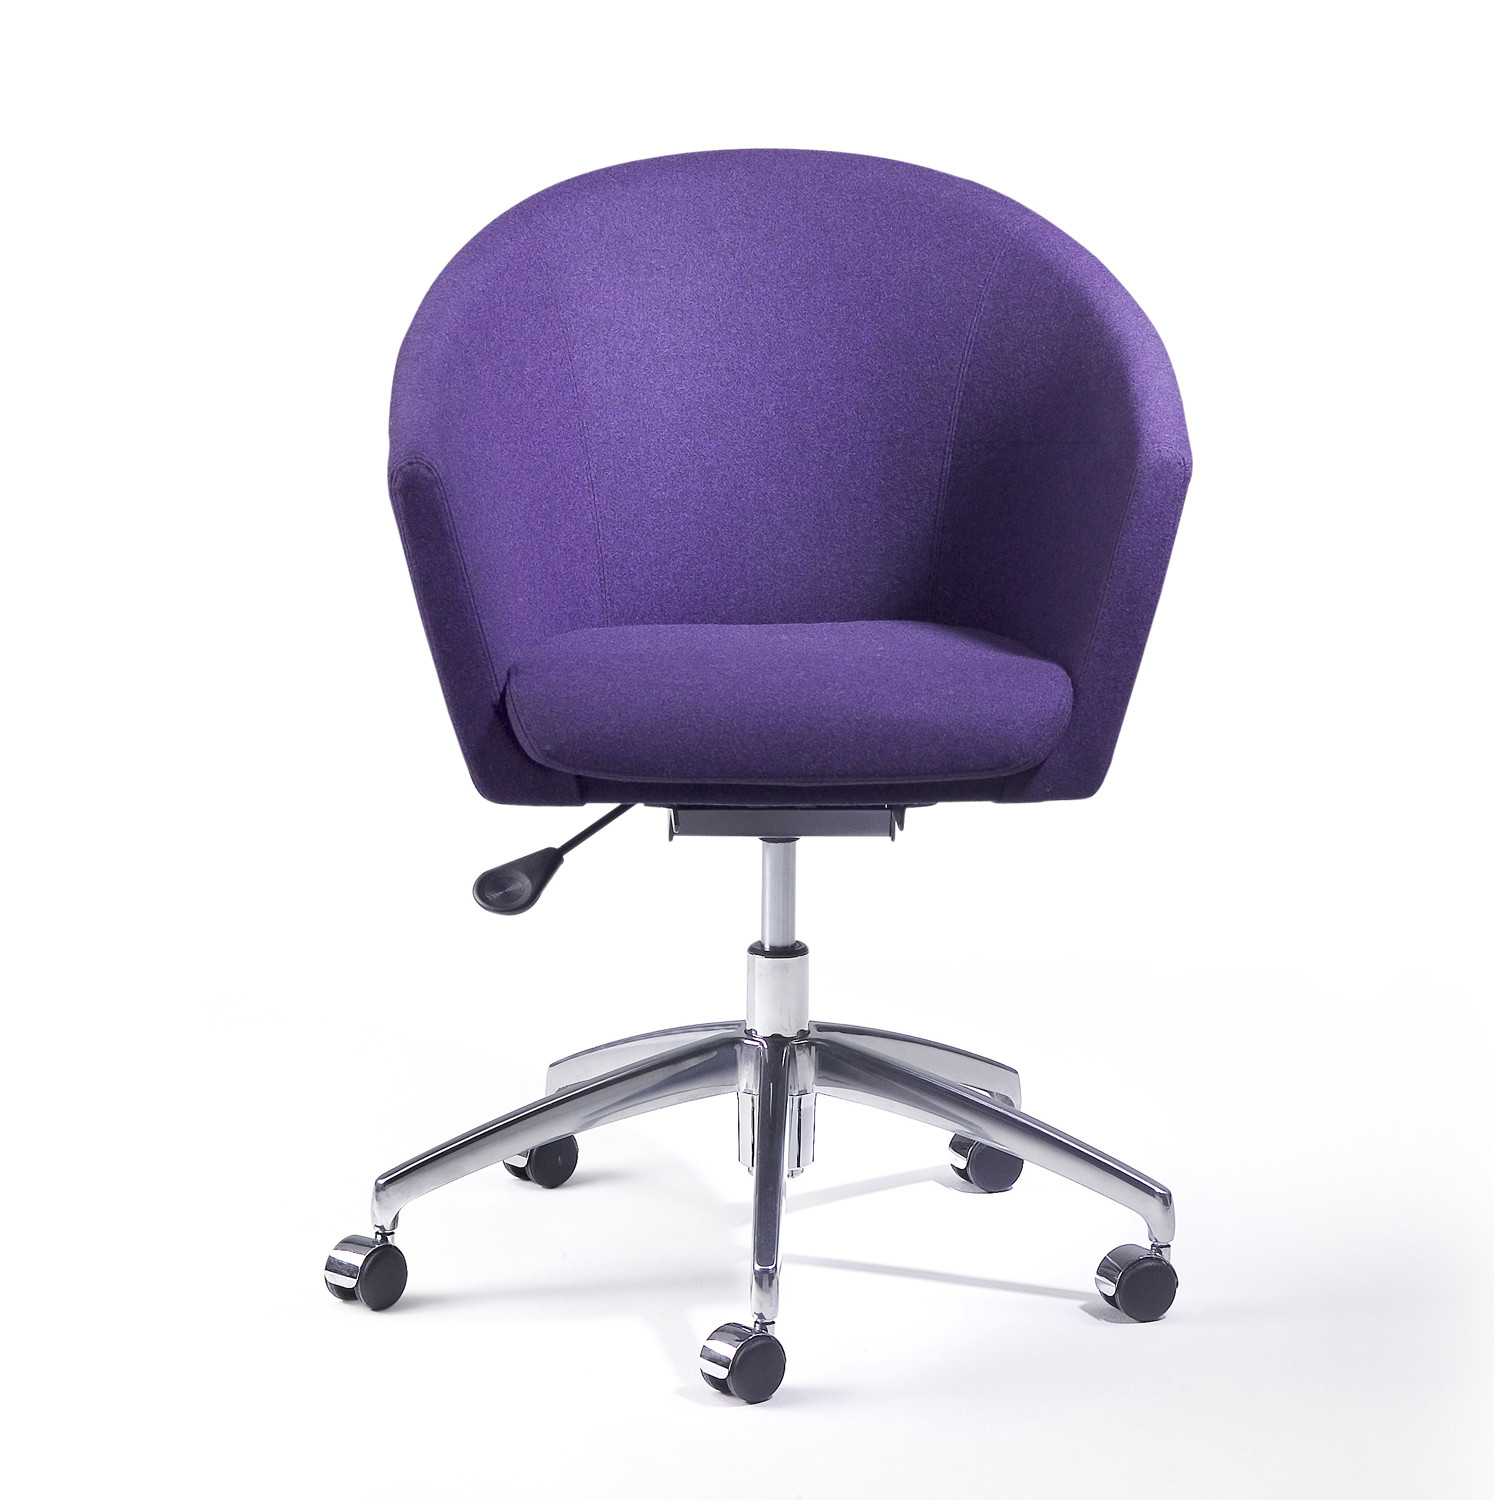 Megan Swivel Chair by Artifort